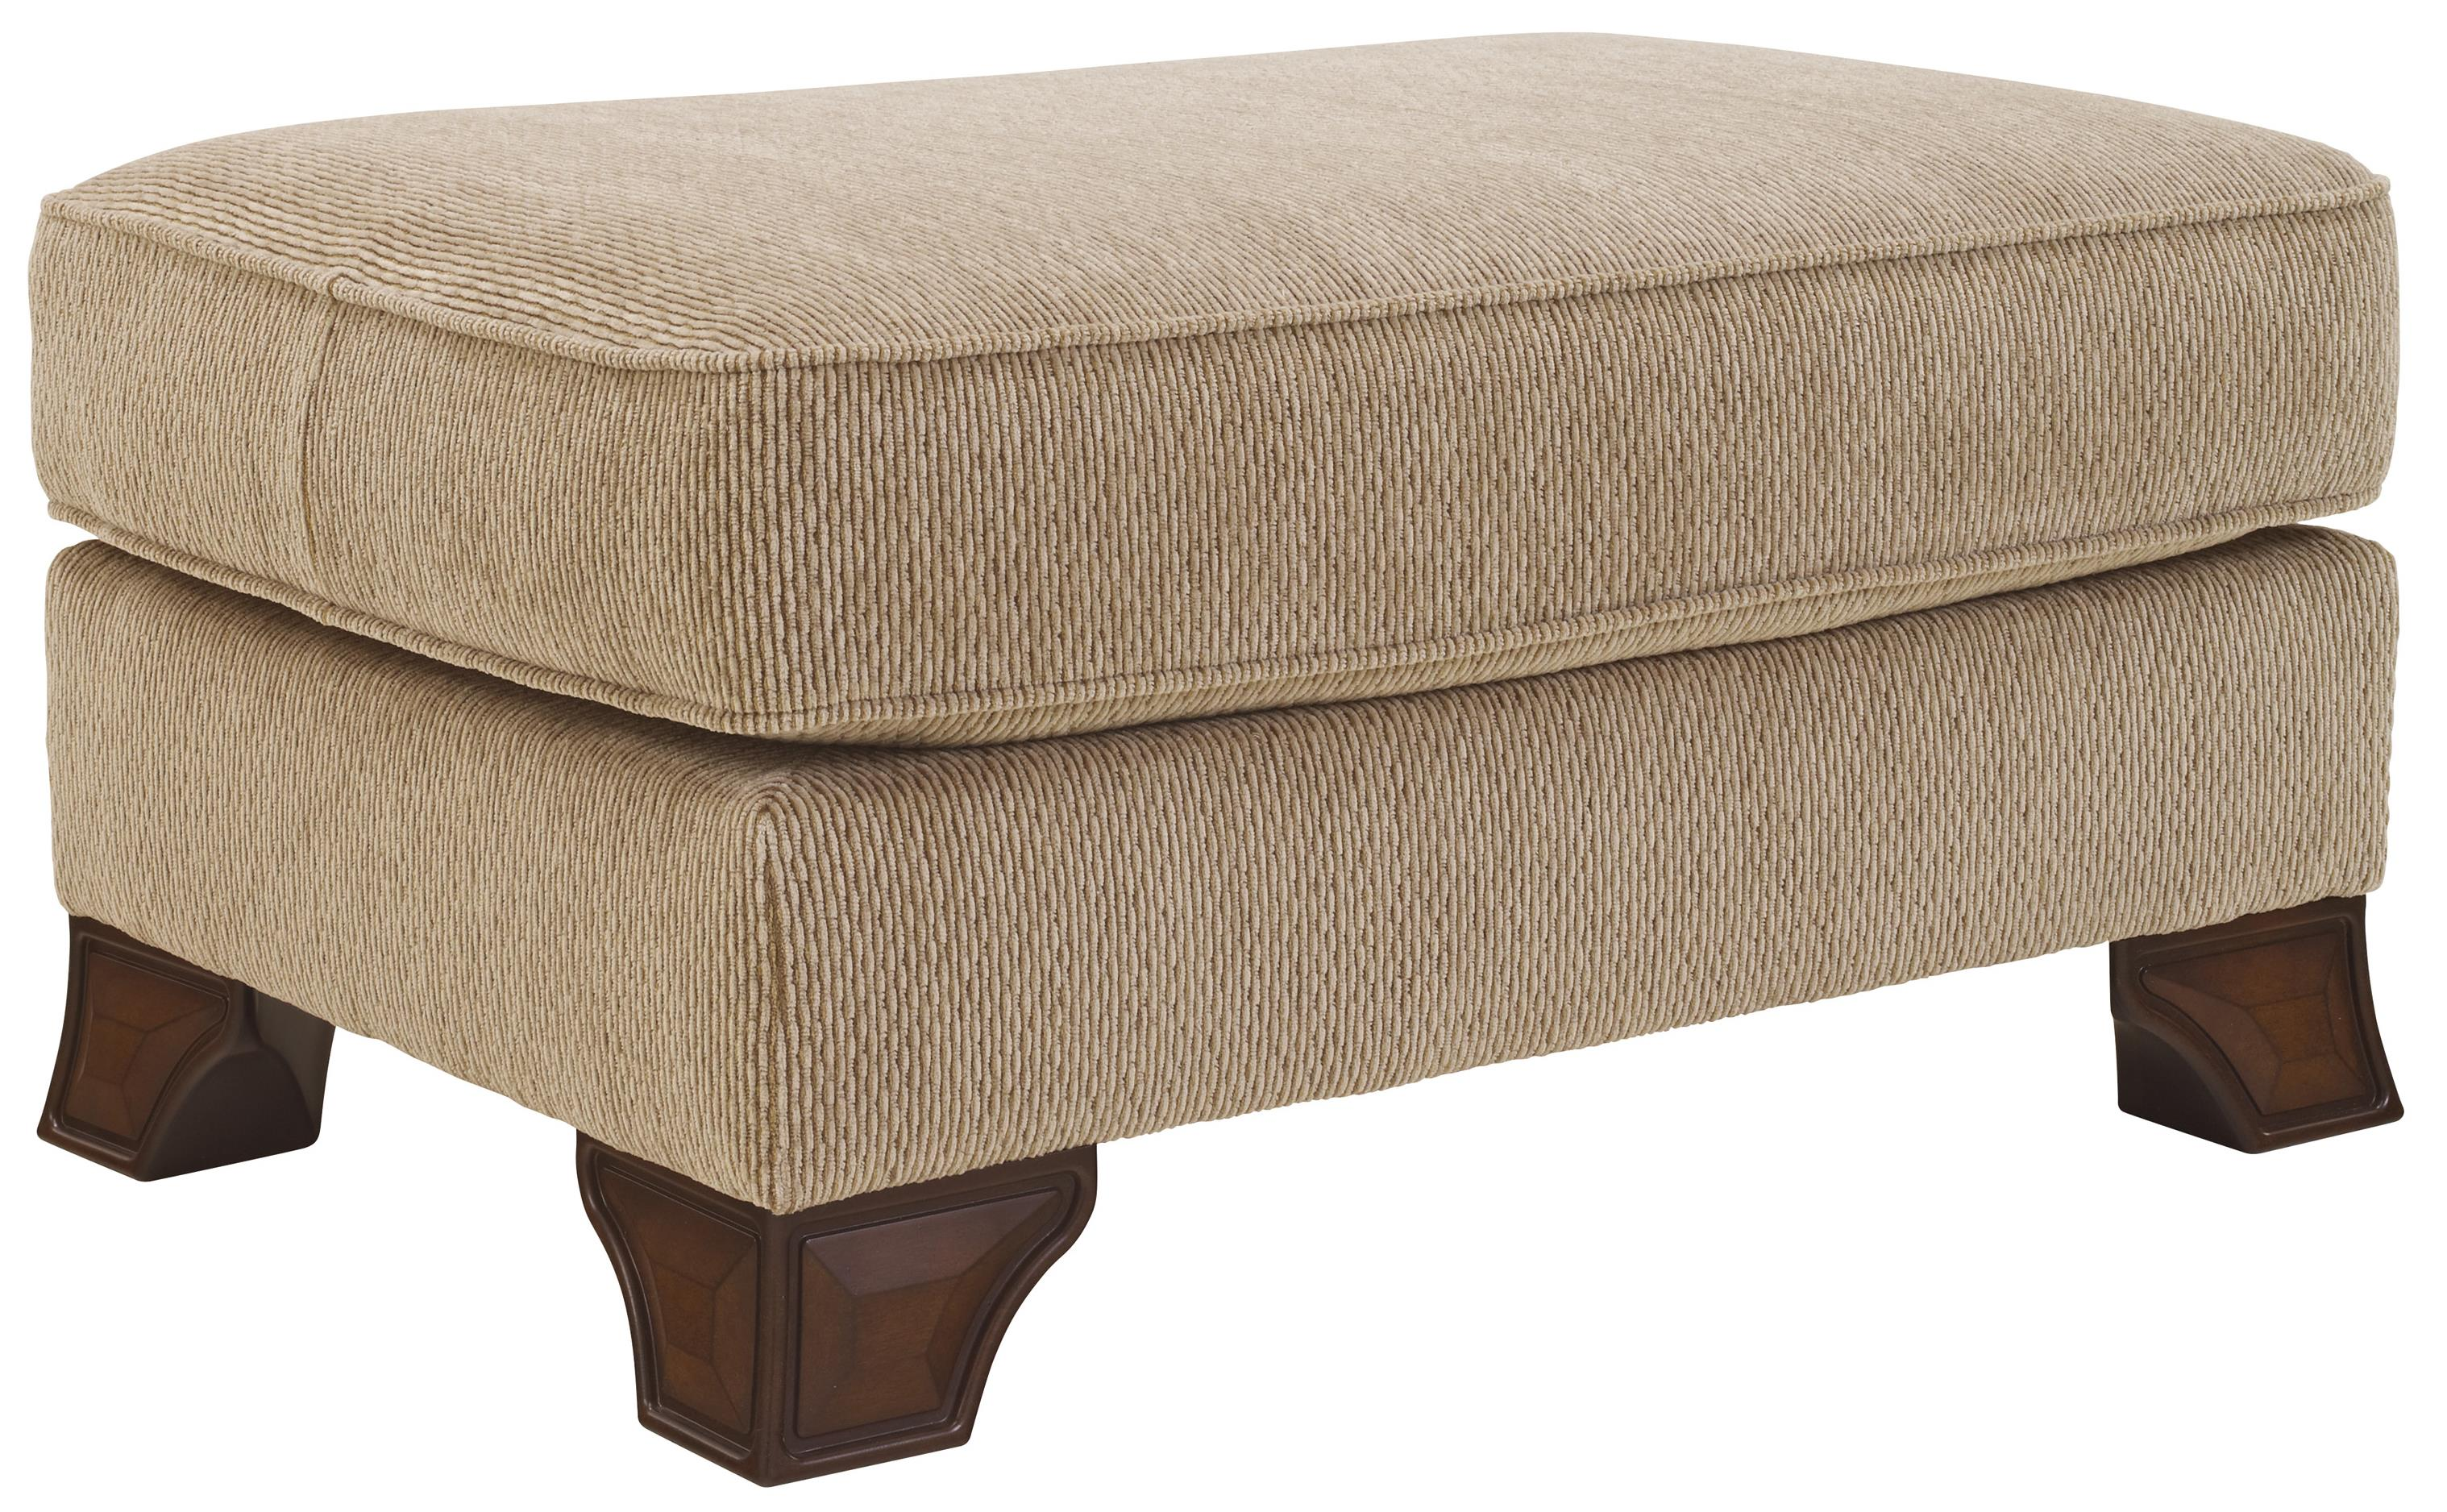 Lanett Ottoman by Signature at Walker's Furniture